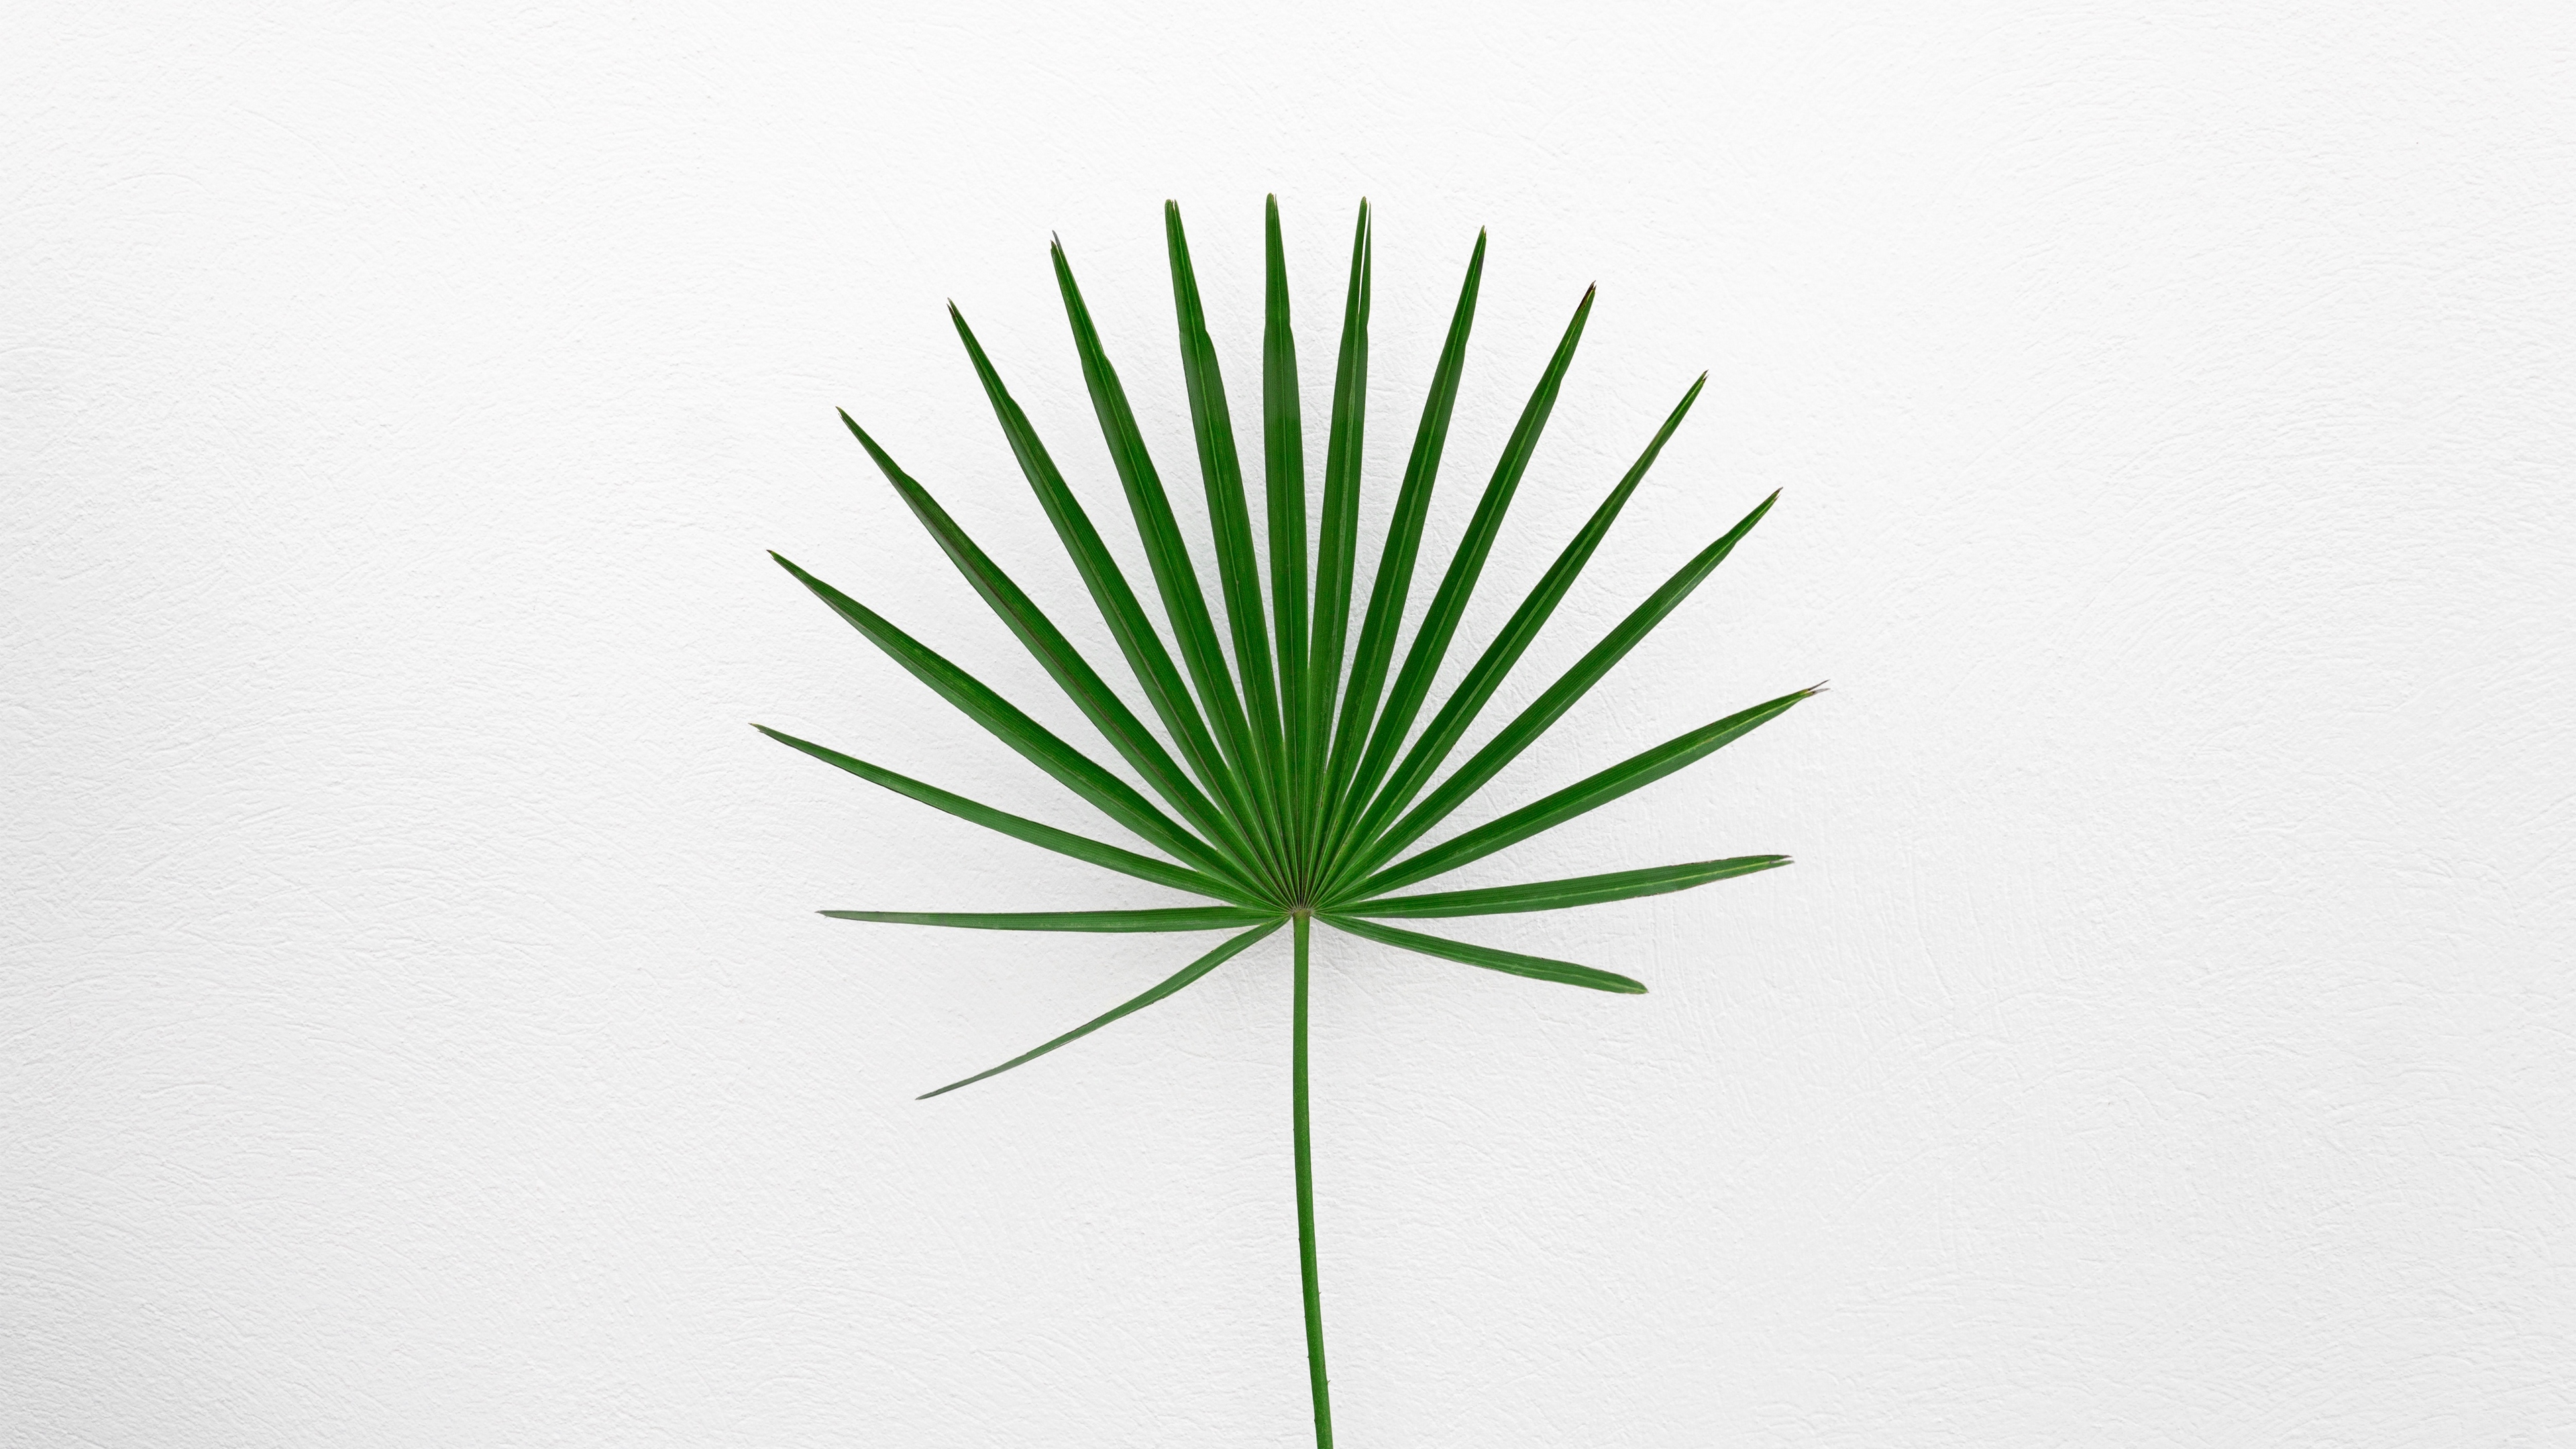 Wallpaper Leaf Plant Minimalism Green White Grass 2989817 Hd Wallpaper Backgrounds Download